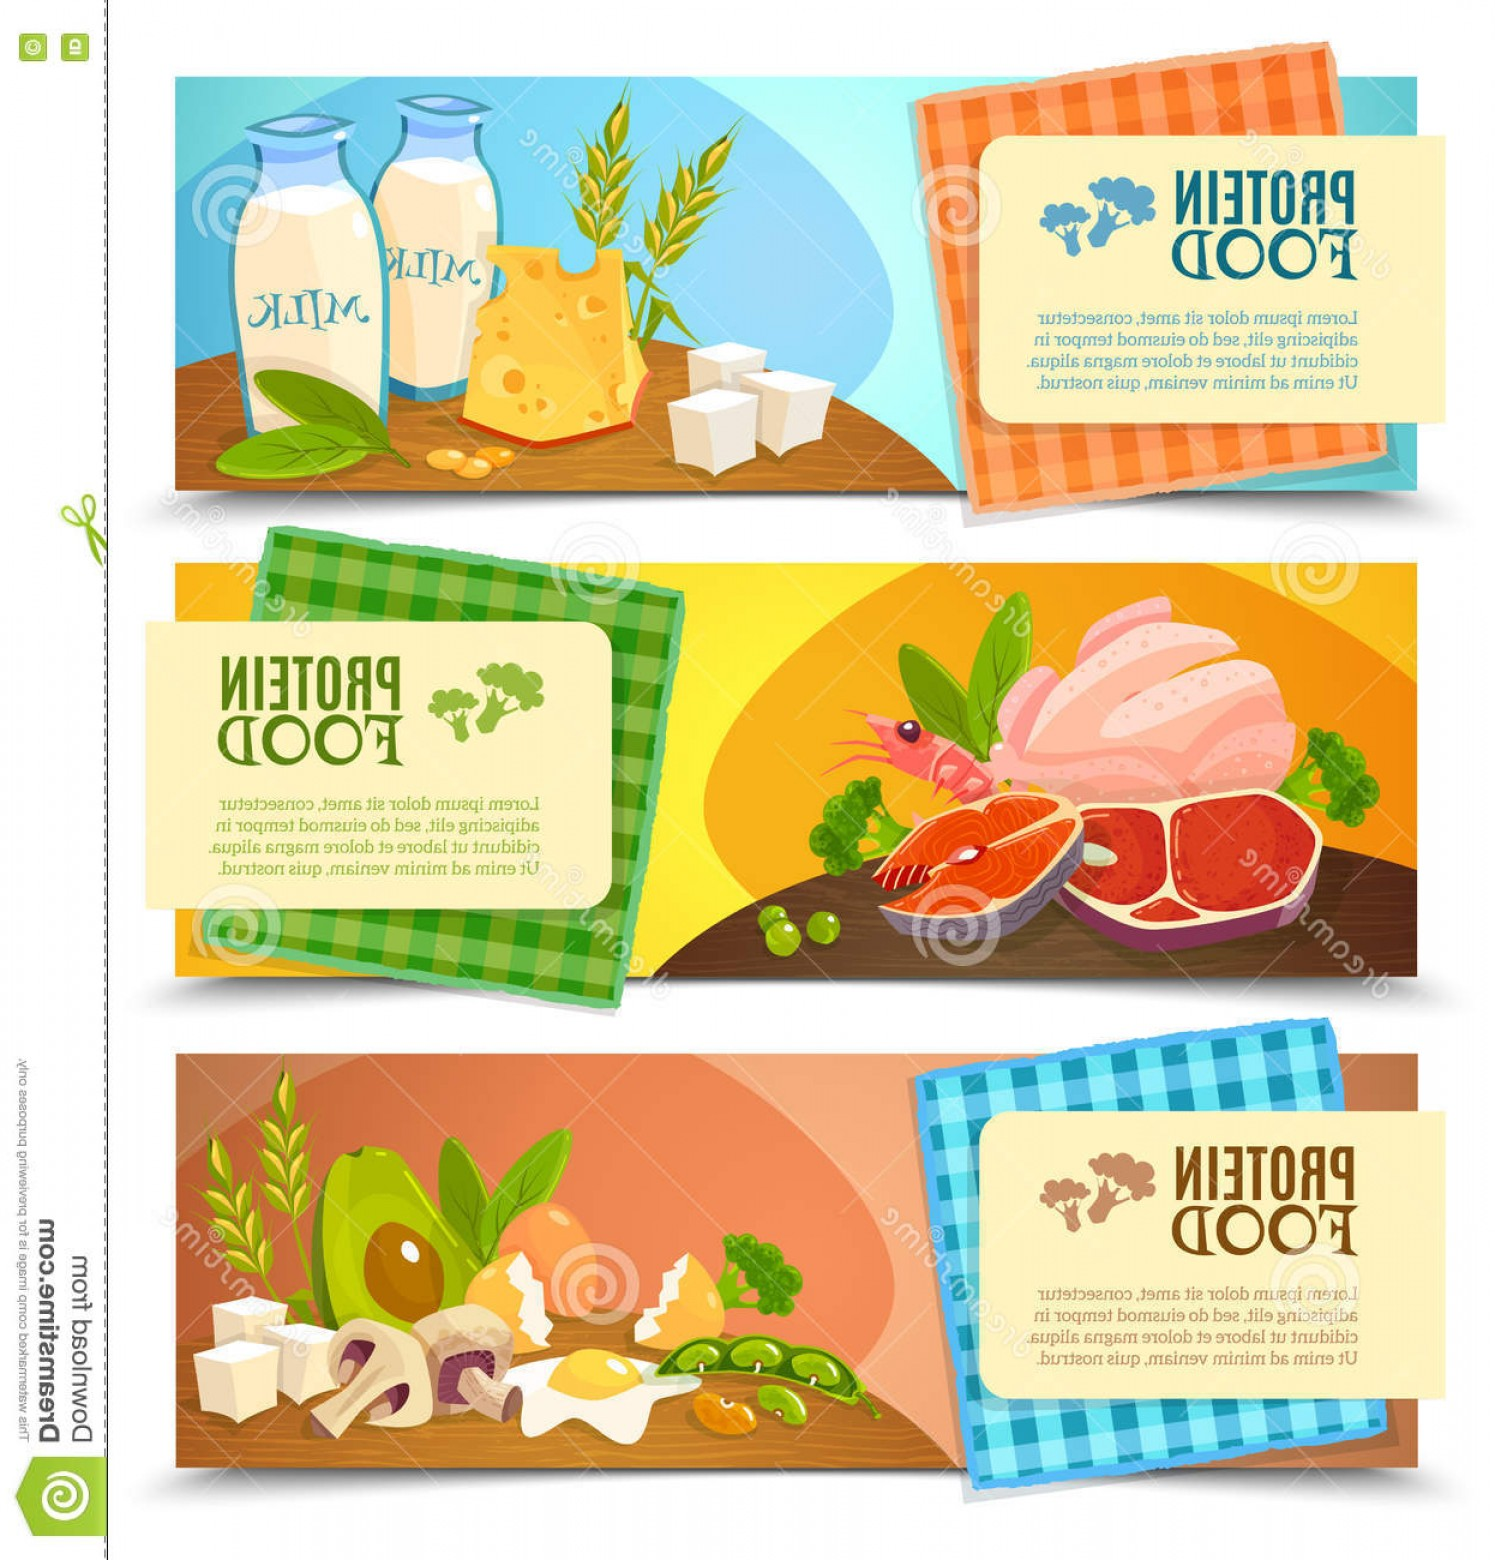 Vector Protein: Stock Illustration Protein Food Flat Horizontal Banners Set Healthy Diet Information High Abstract Vector Illustration Image